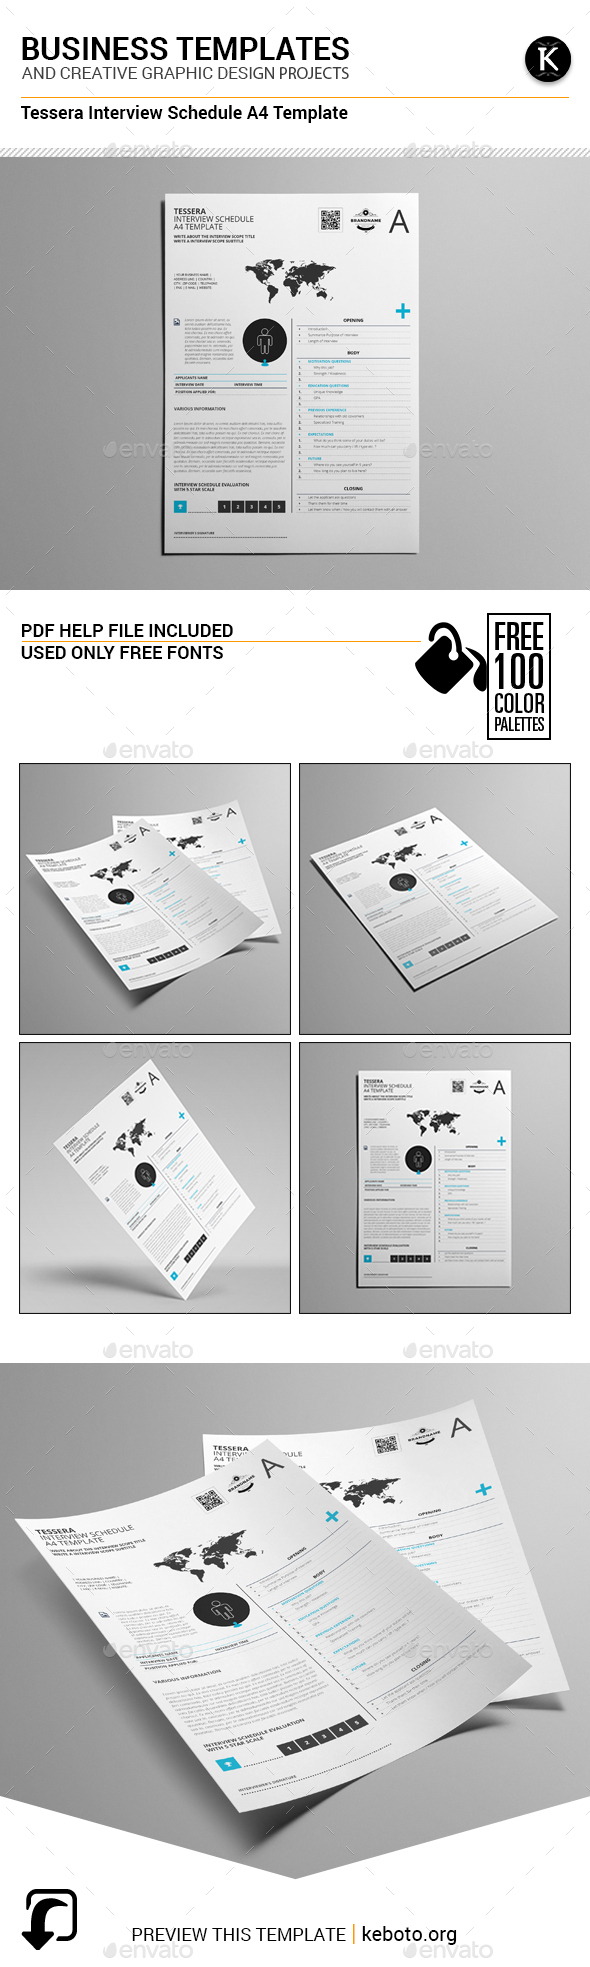 Tessera Interview Schedule A4 Template - Miscellaneous Print Templates